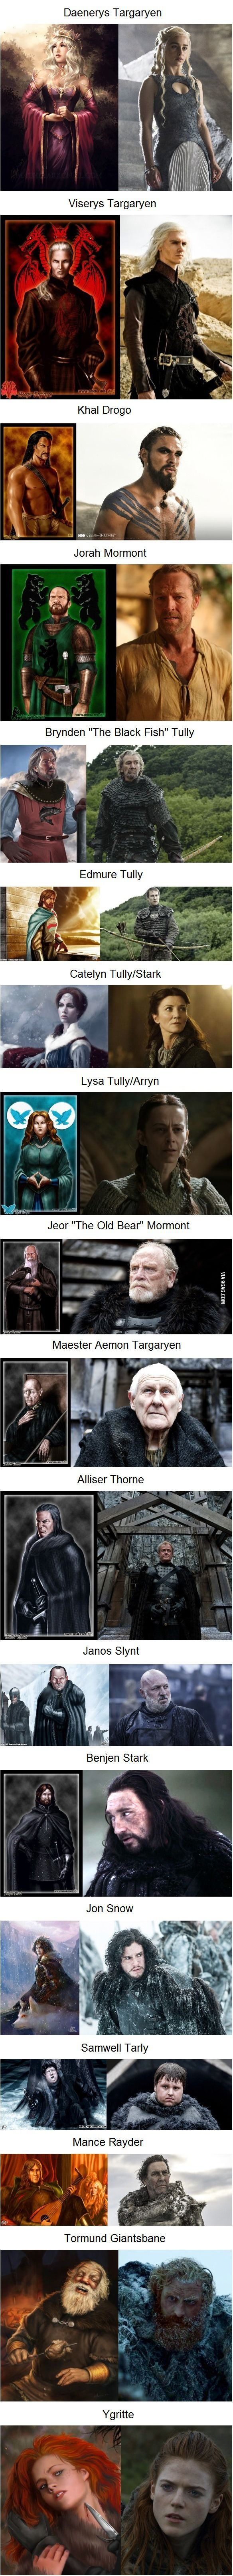 25 best ideas about jorah game of thrones on pinterest game of - Game Of Thrones Characters In The Books Vs On The Show Part 3